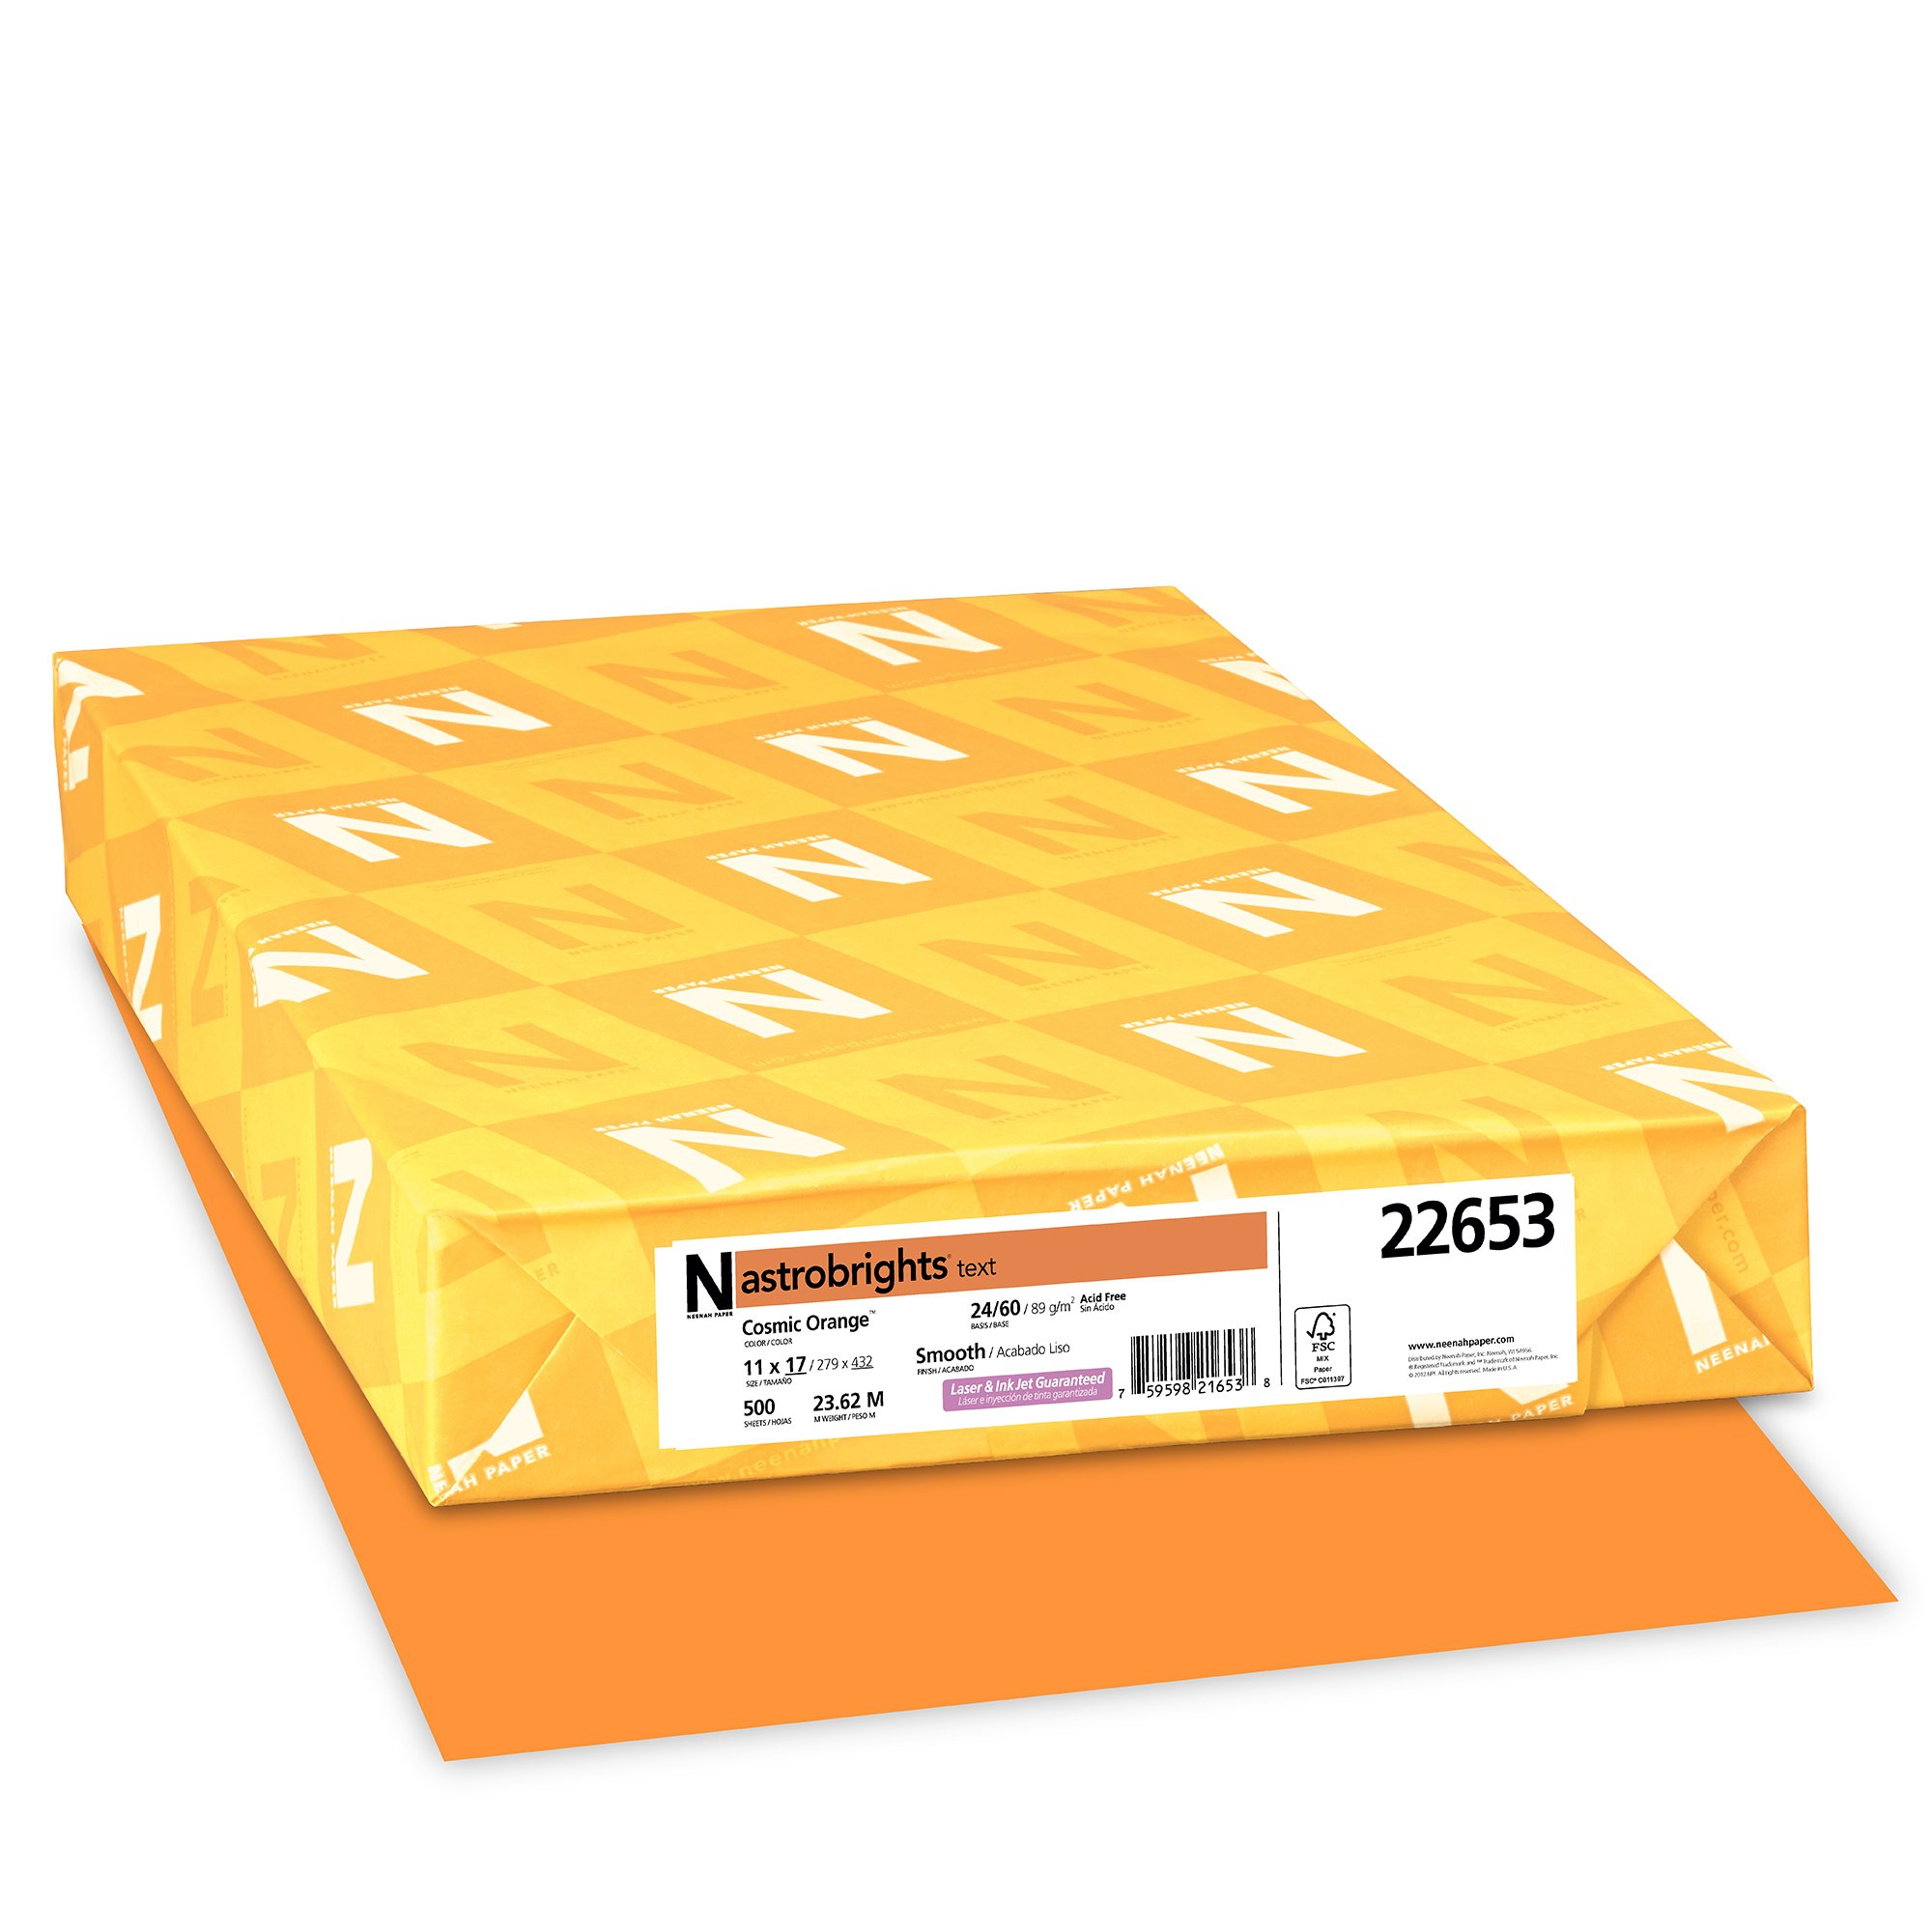 Wausau Astrobrights Heavy Duty Paper, 24 lb, 11 X 17 Inches, Cosmic Orange, 500 Sheets (22653) by Neenah